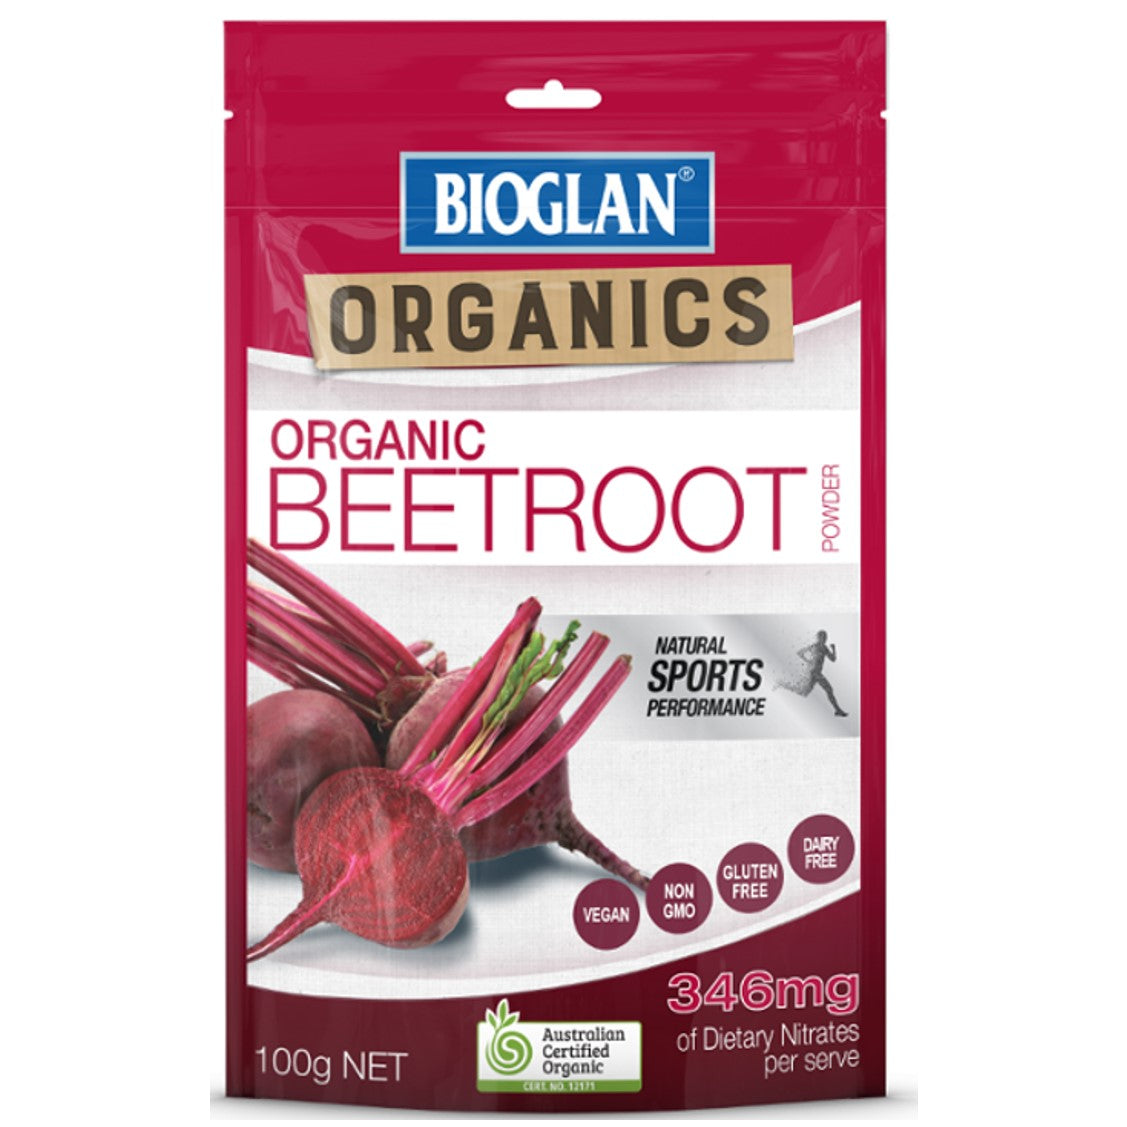 Bioglan Superfood Beetroot Powder, 100g.